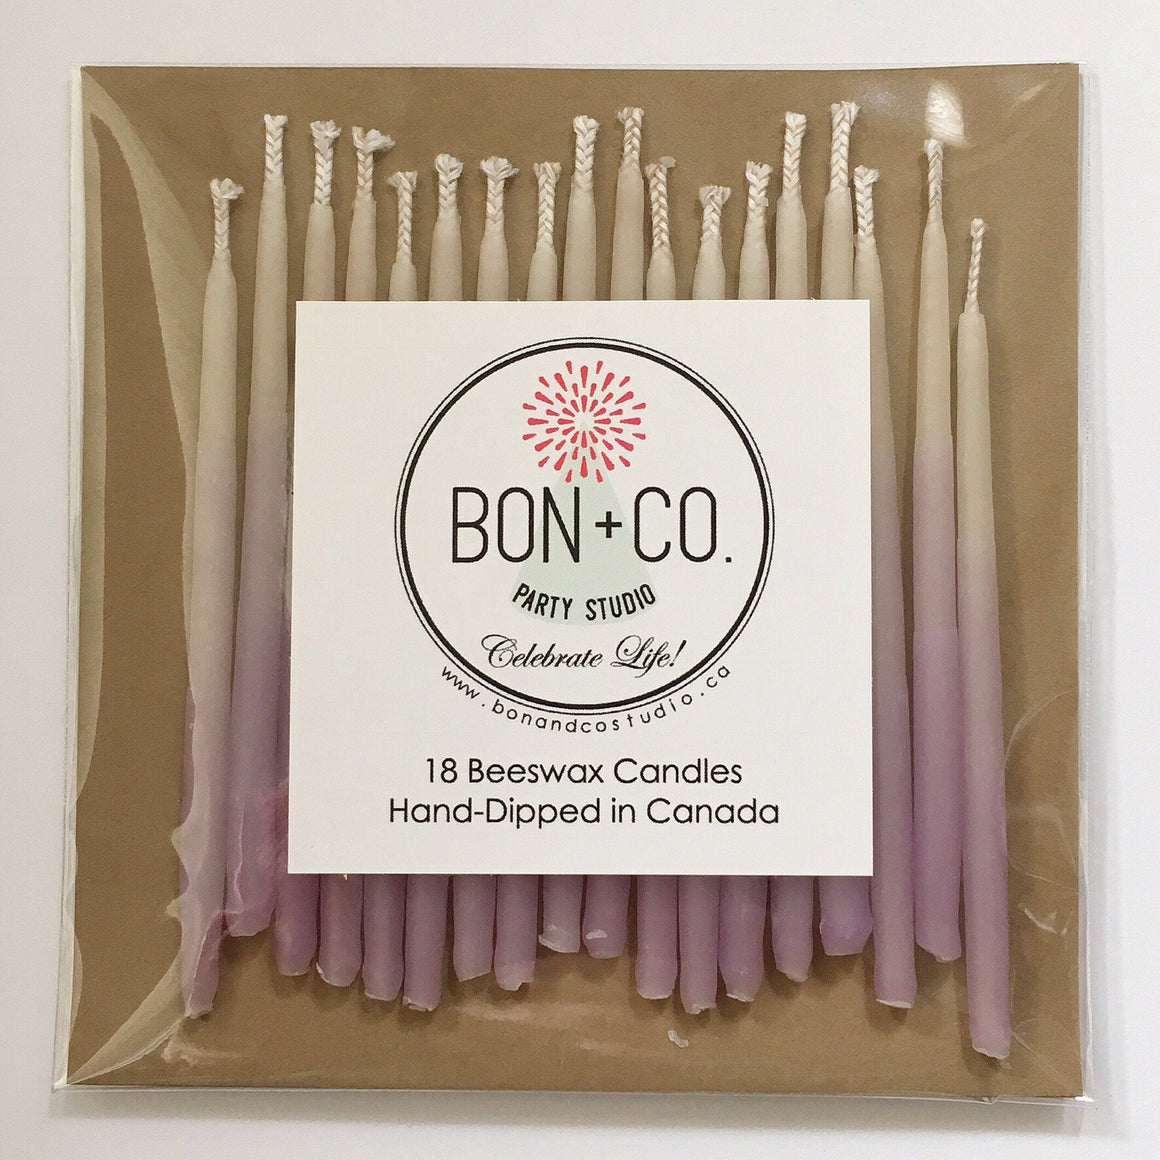 "CANDLES 3"" BEESWAX - OMBRE LAVENDER, Candles + Sparklers, BON + CO - Bon + Co. Party Studio"